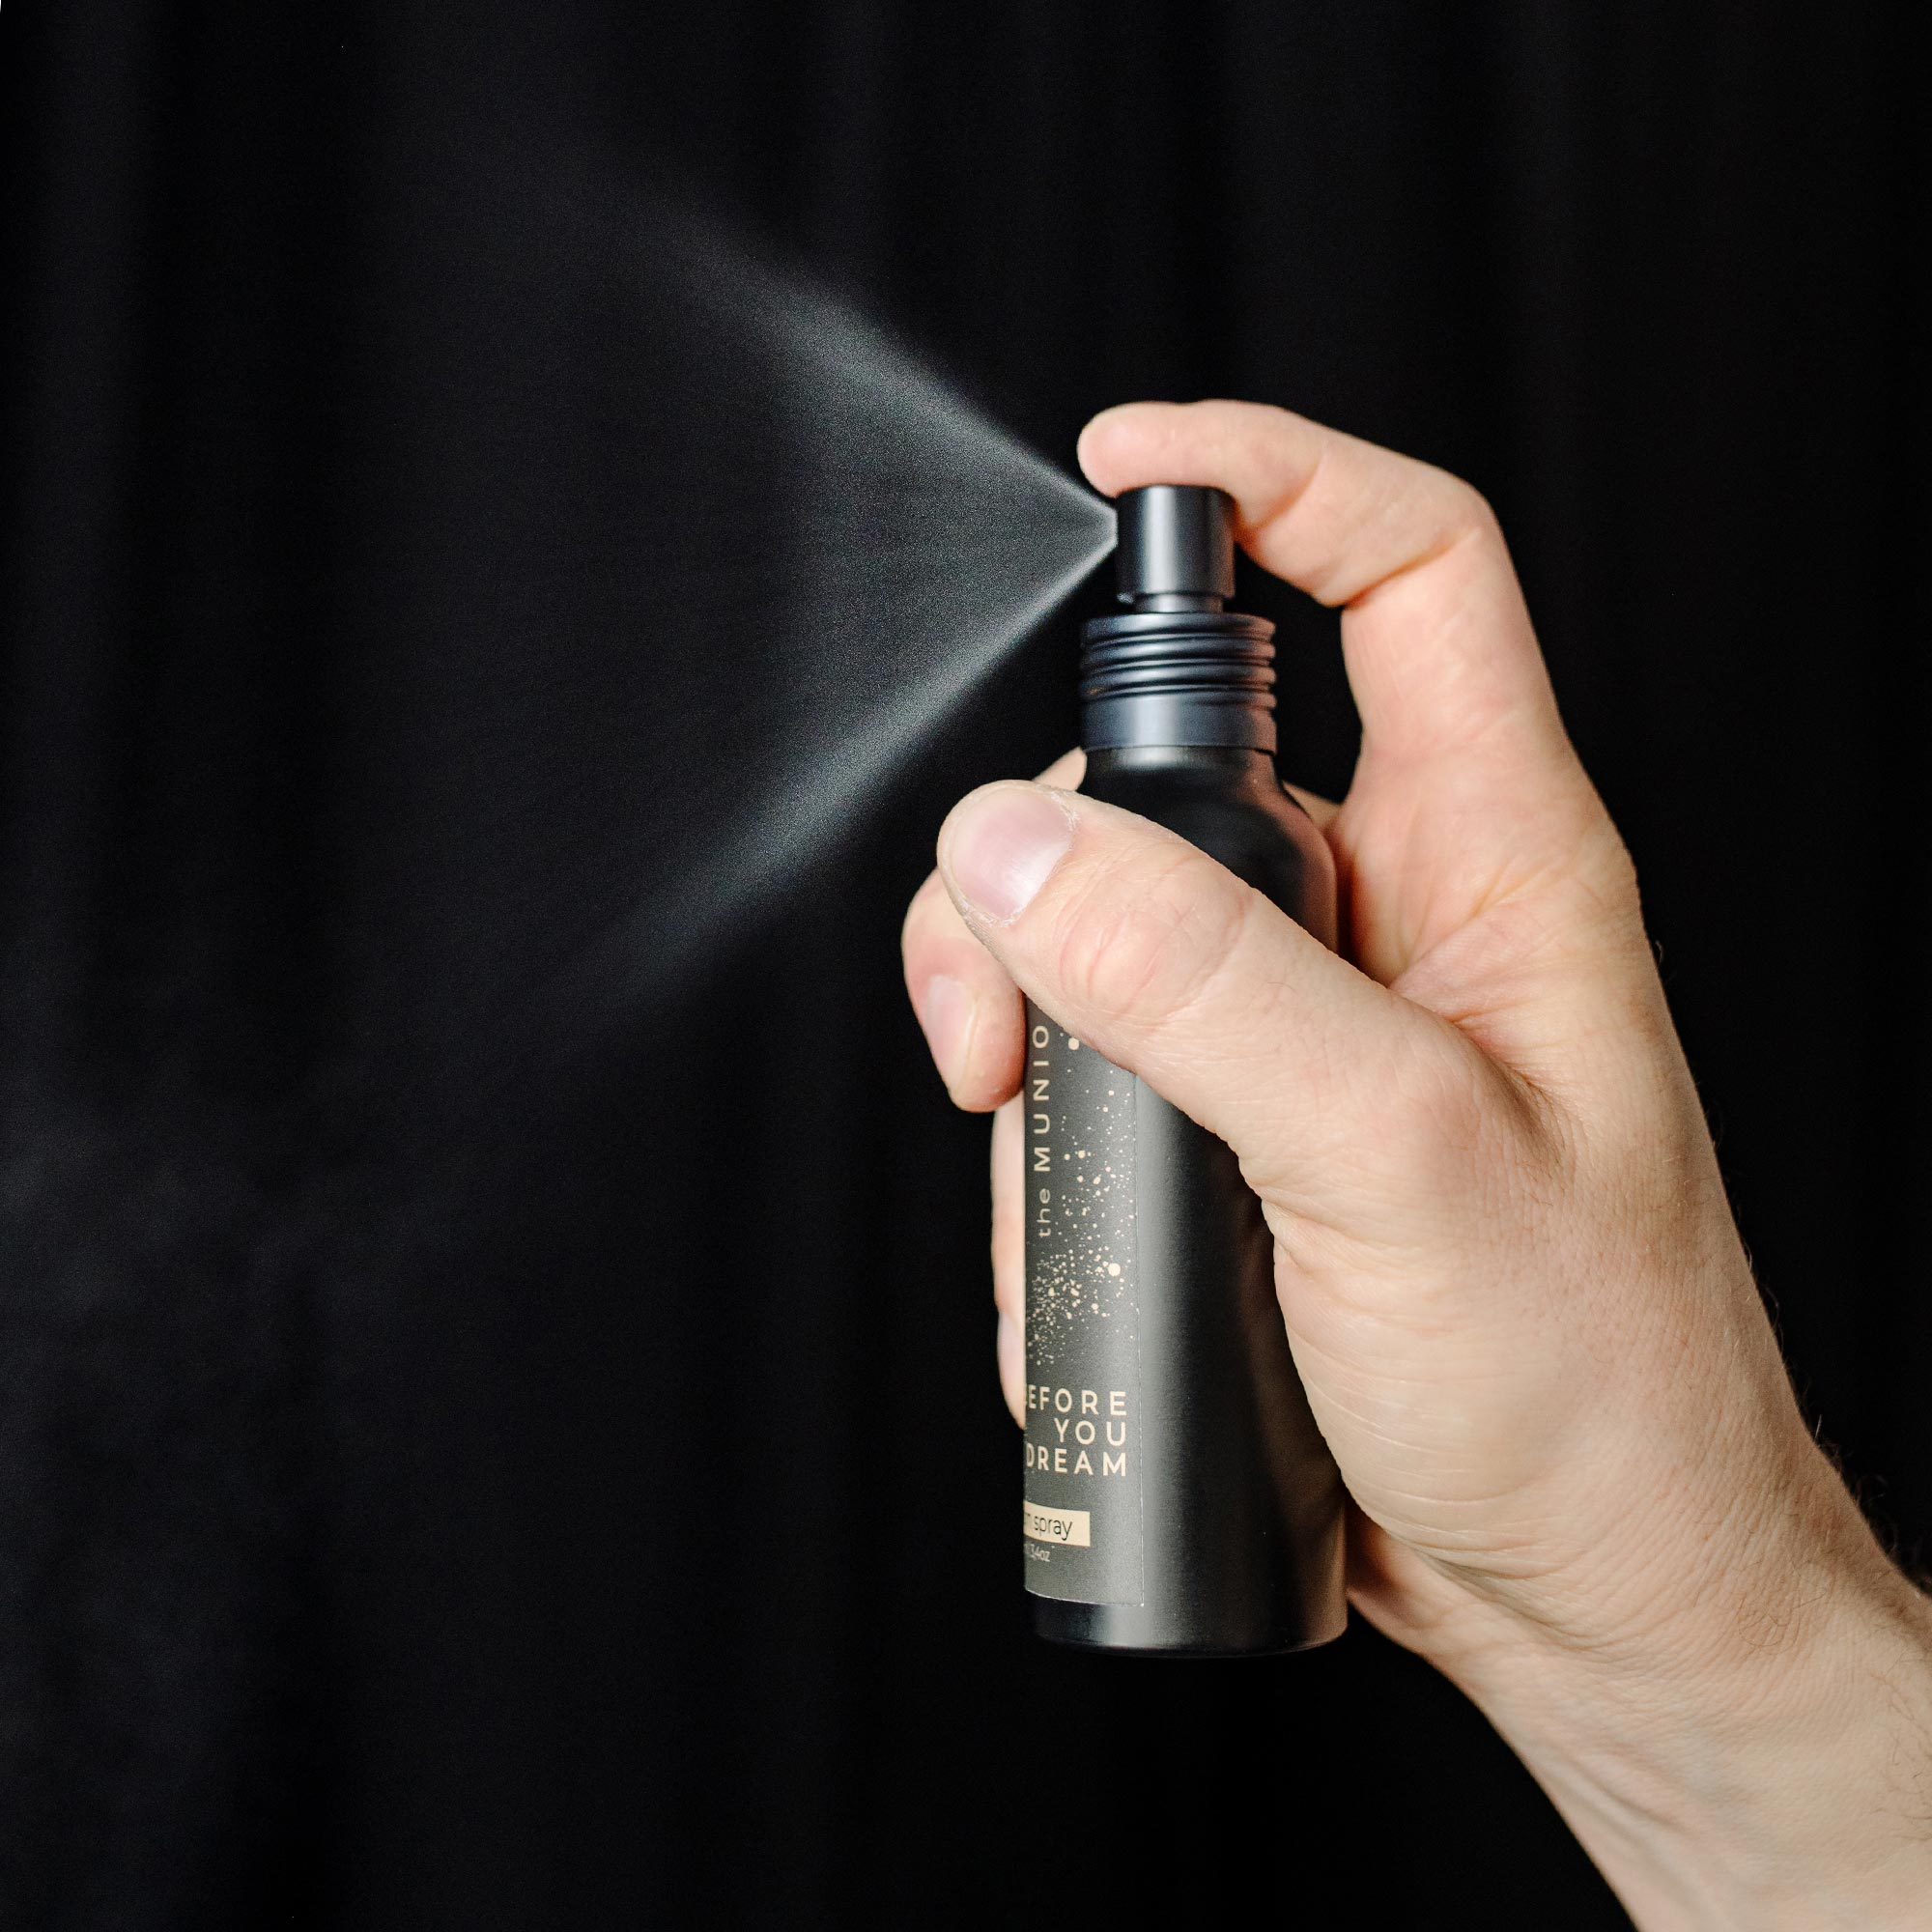 Before you dream room spray